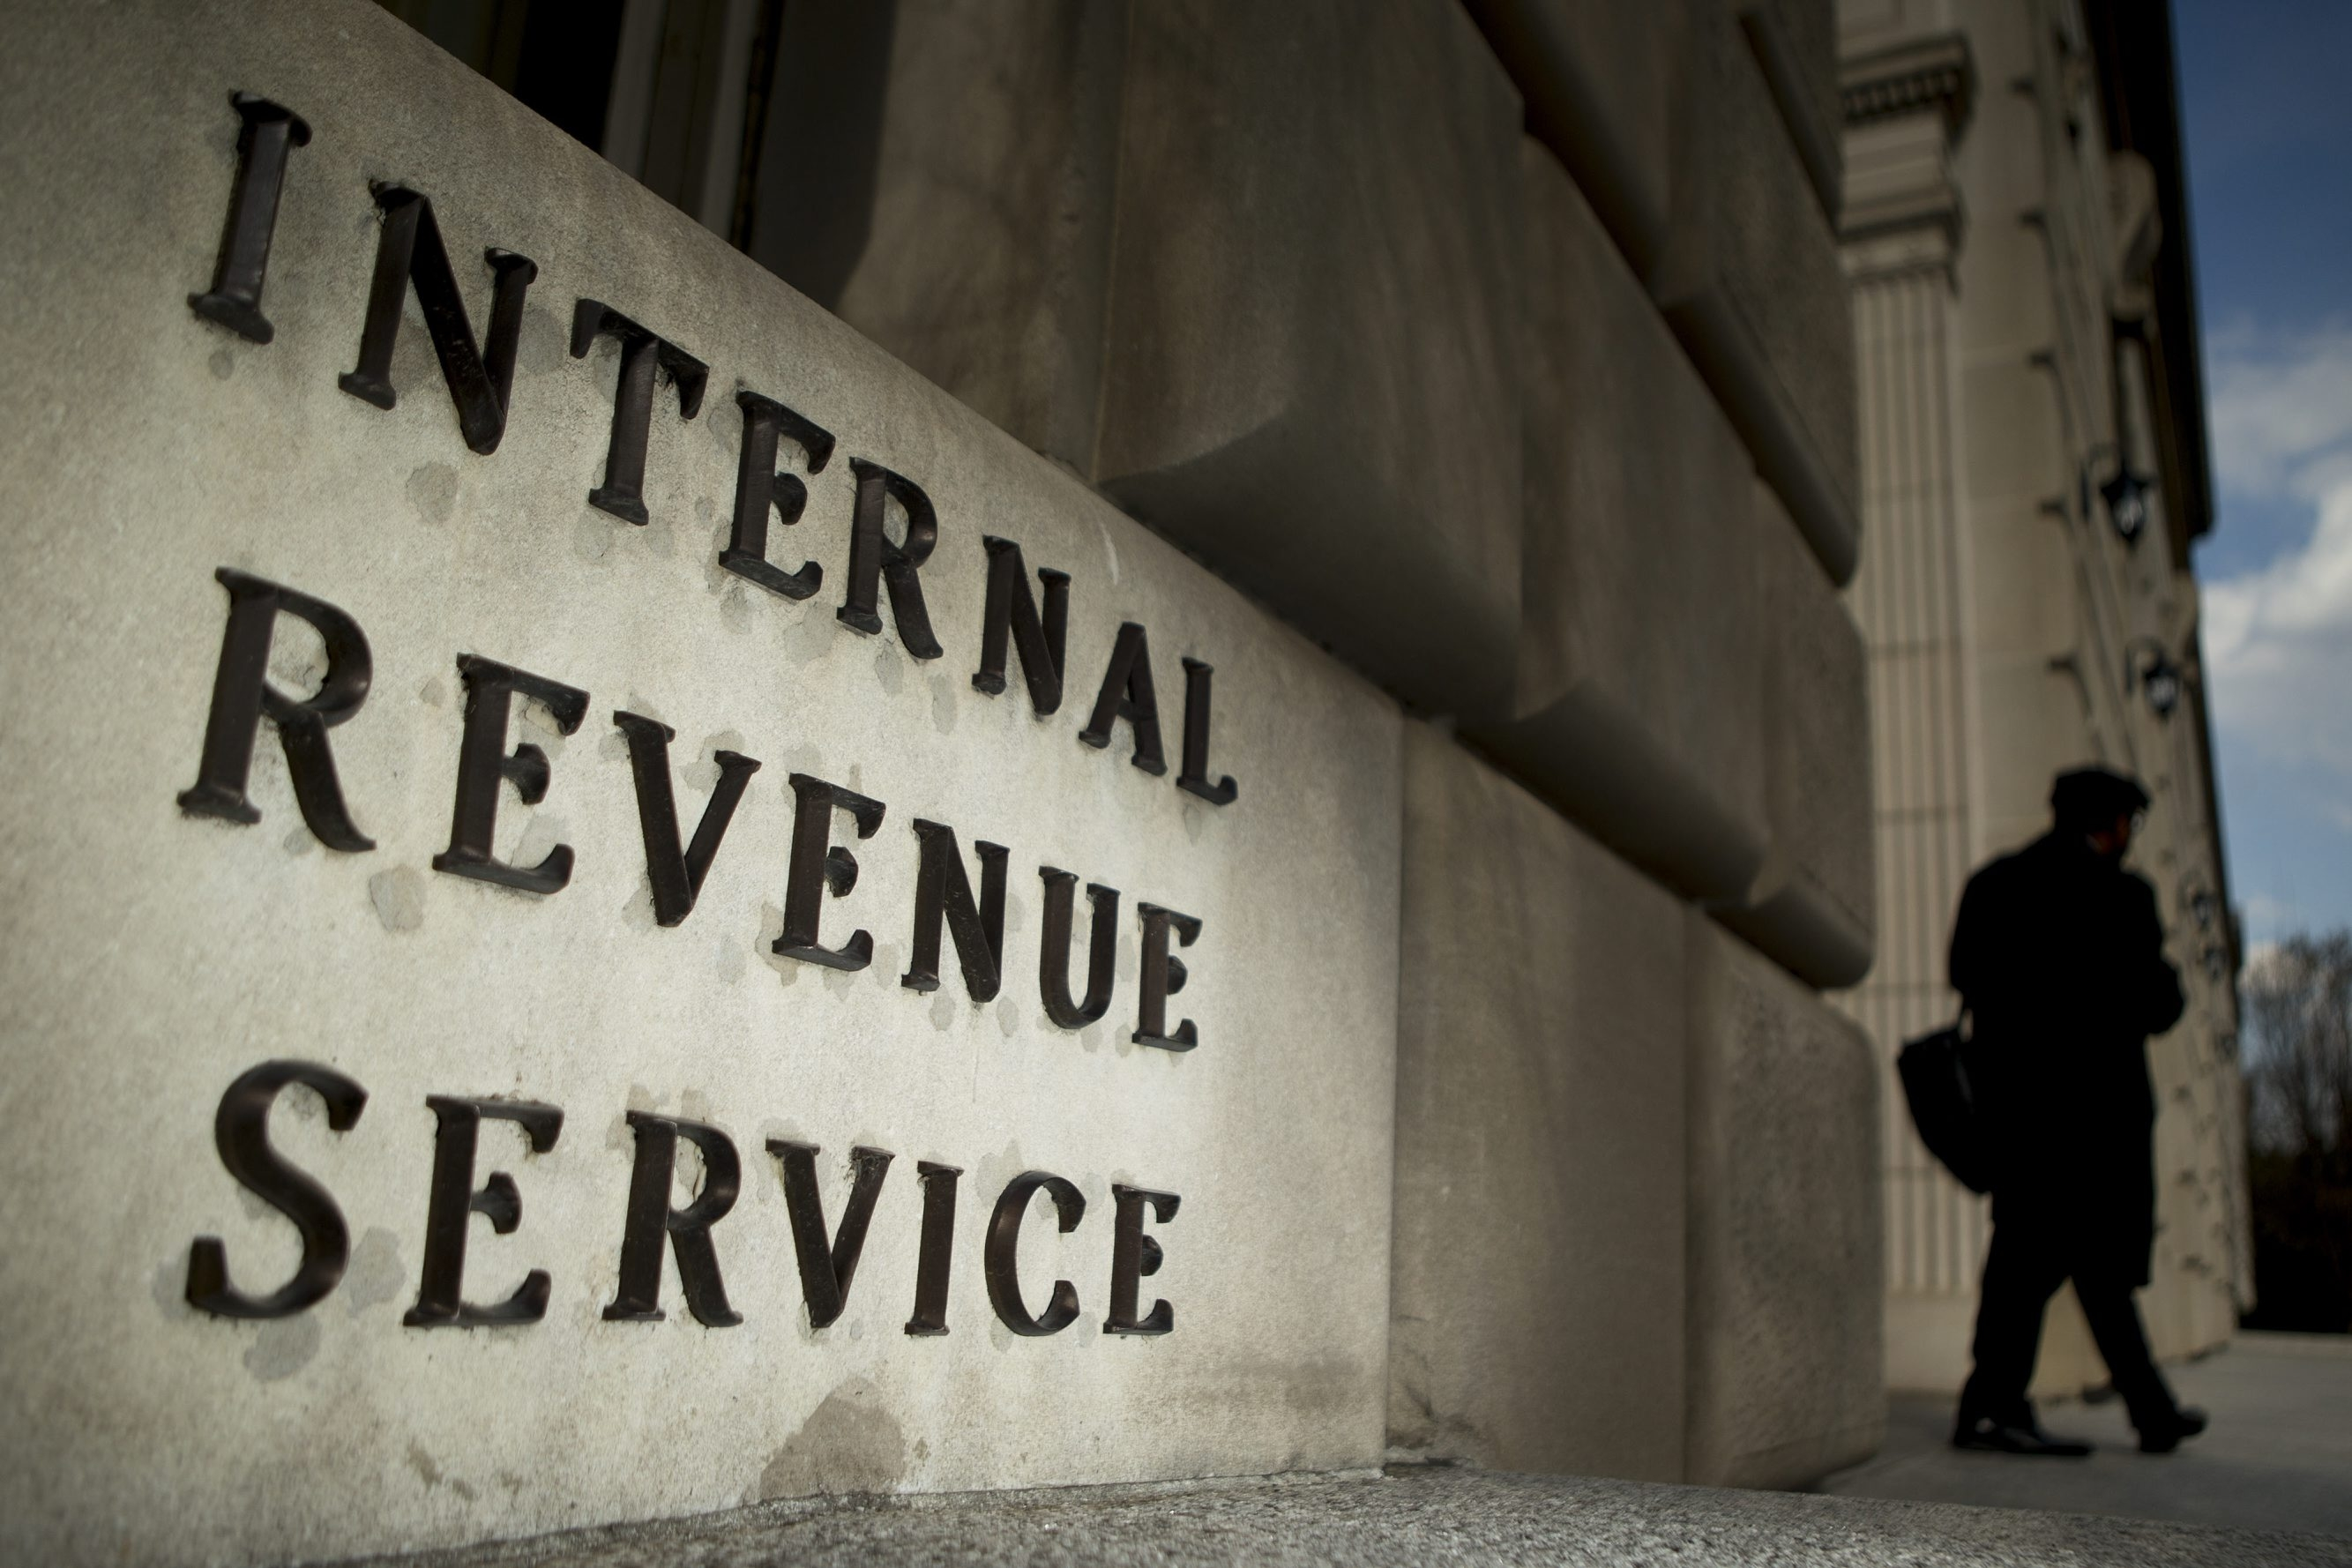 Bloomberg Photo Service ' Best of the Week': The Internal Revenue Service (IRS) headquarters stands in Washington, D.C., U.S., on Wednesday, April 9, 2014. The deadline for filing 2013 U.S. taxes is April 15. Photographer: Andrew Harrer/Bloomberg